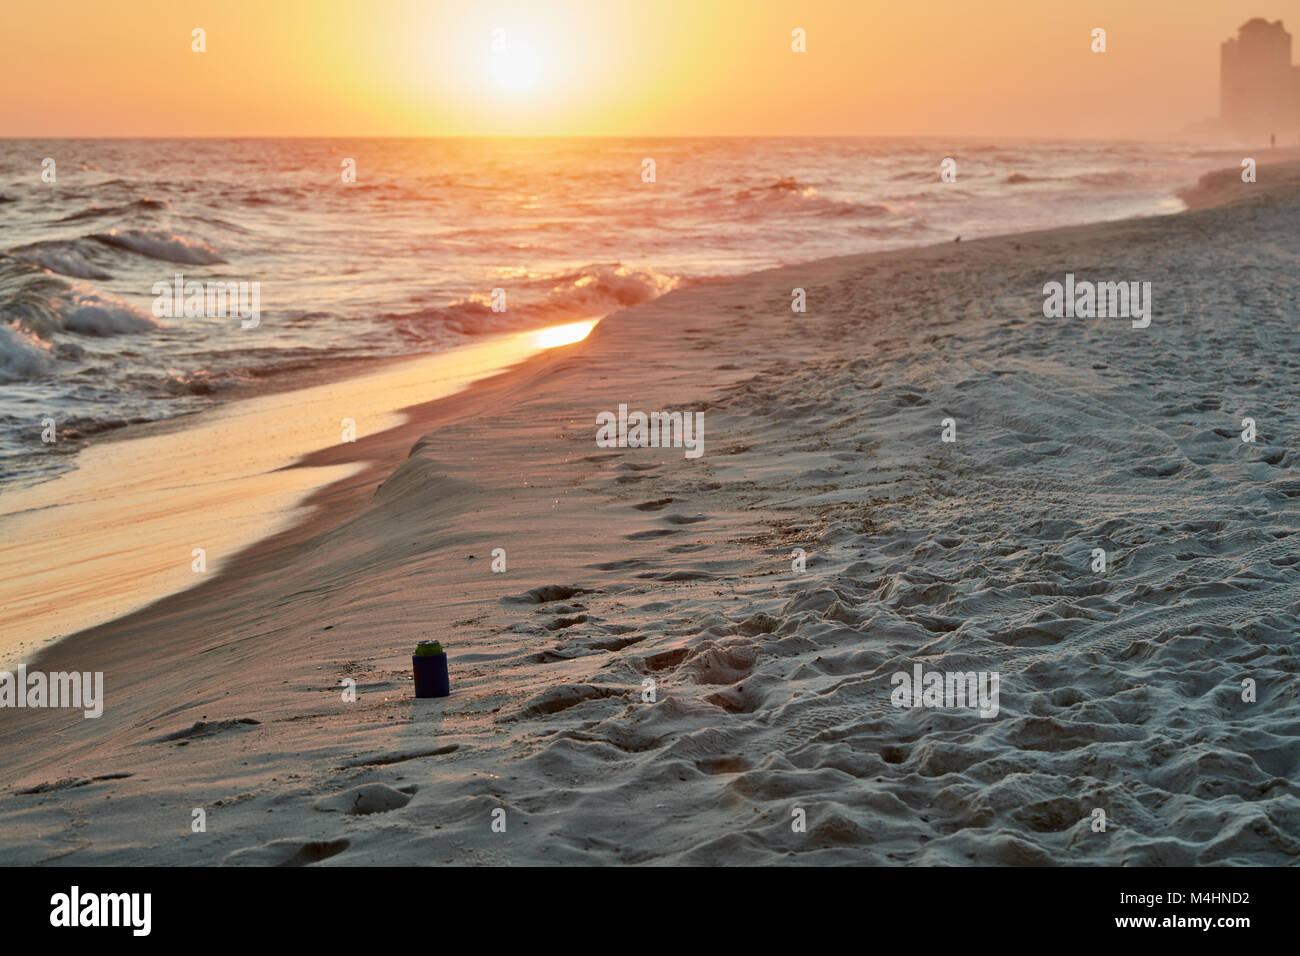 Abandoned soda can on the beach at sunset, Gulf State Park, Alabama Stock Photo